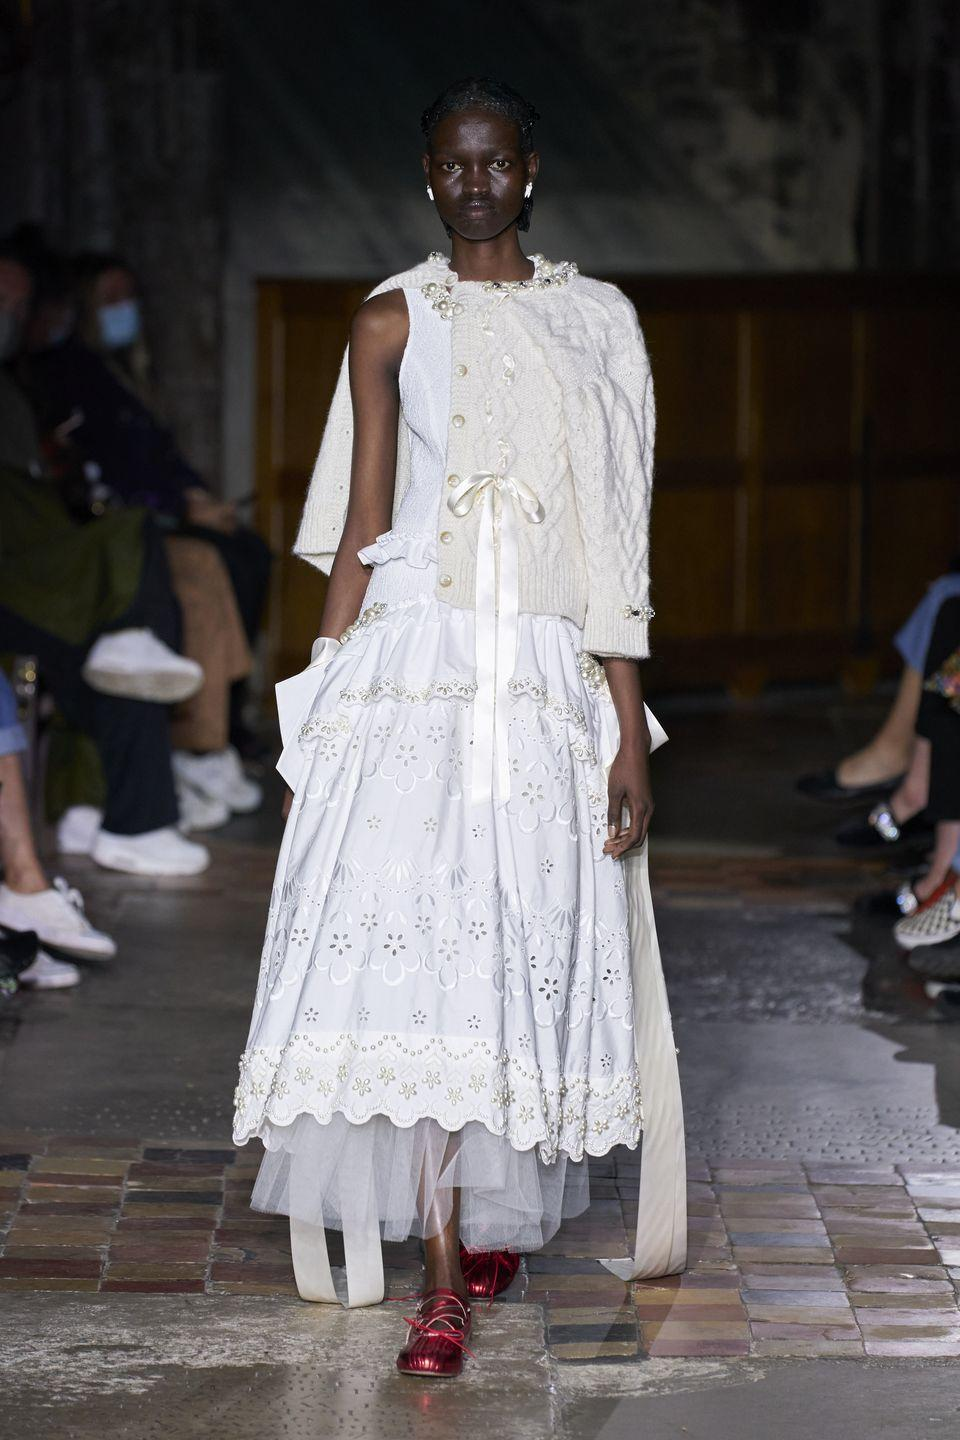 """<p>This season marked Simone Rocha's 10-year anniversary, and the designer chose to focus on the topic of mother-daughter relationships. """"I wanted to blow up those childlike proportions and distort them, mix them with the sleepless nights that come with having a daughter,"""" <a href=""""https://wwd.com/runway/spring-2022/london/simone-rocha/review/"""" rel=""""nofollow noopener"""" target=""""_blank"""" data-ylk=""""slk:she explained"""" class=""""link rapid-noclick-resp"""">she explained</a>, while she also referenced """"the nursing bra, the breast and the nourishing nature of the milk — sharing it and elevating it with these embellished bras.""""</p>"""